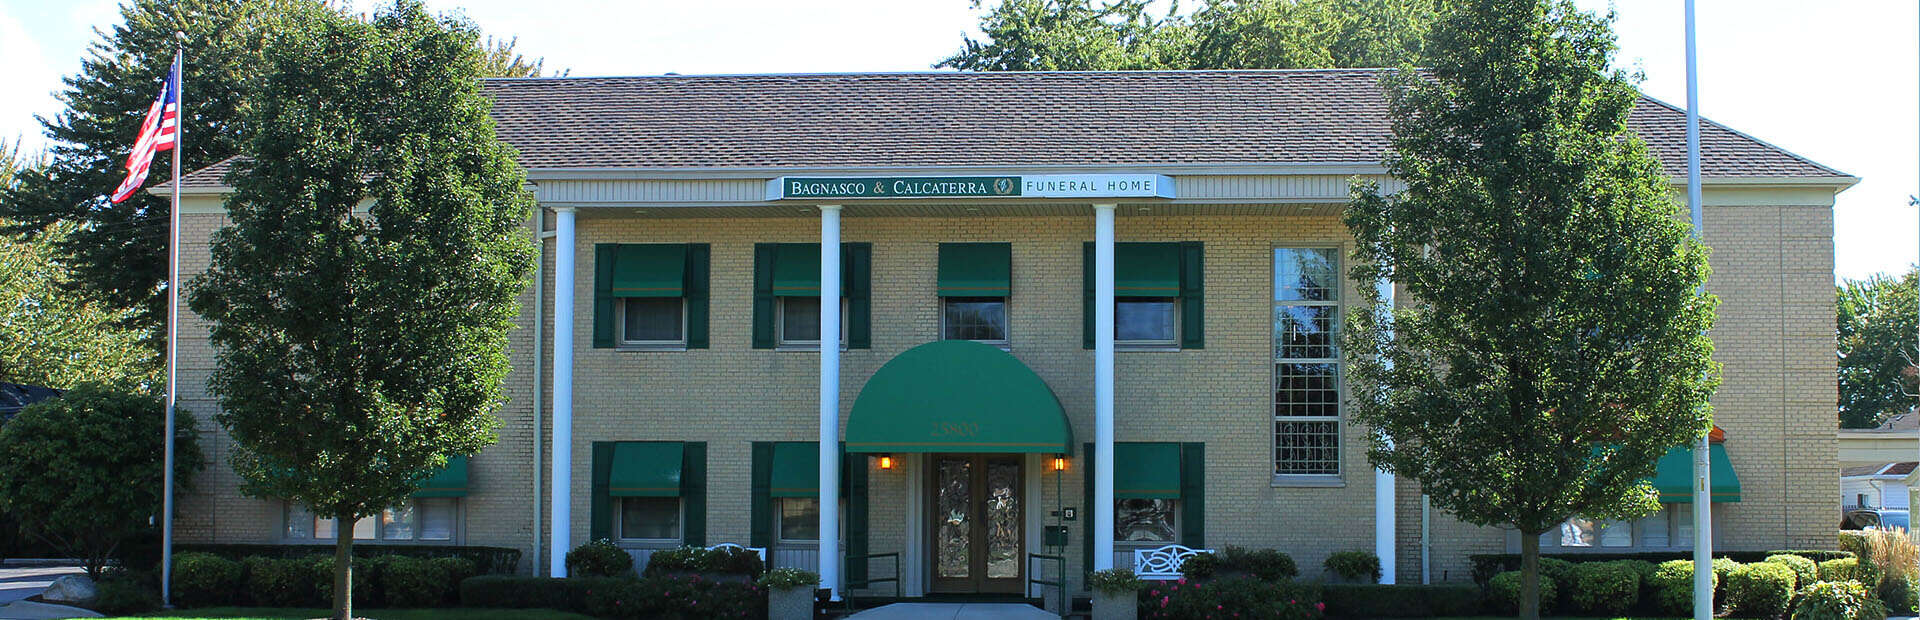 Bagnasco & Calcaterra Funeral Home in St. Clair Shores & Sterling Heights, MI